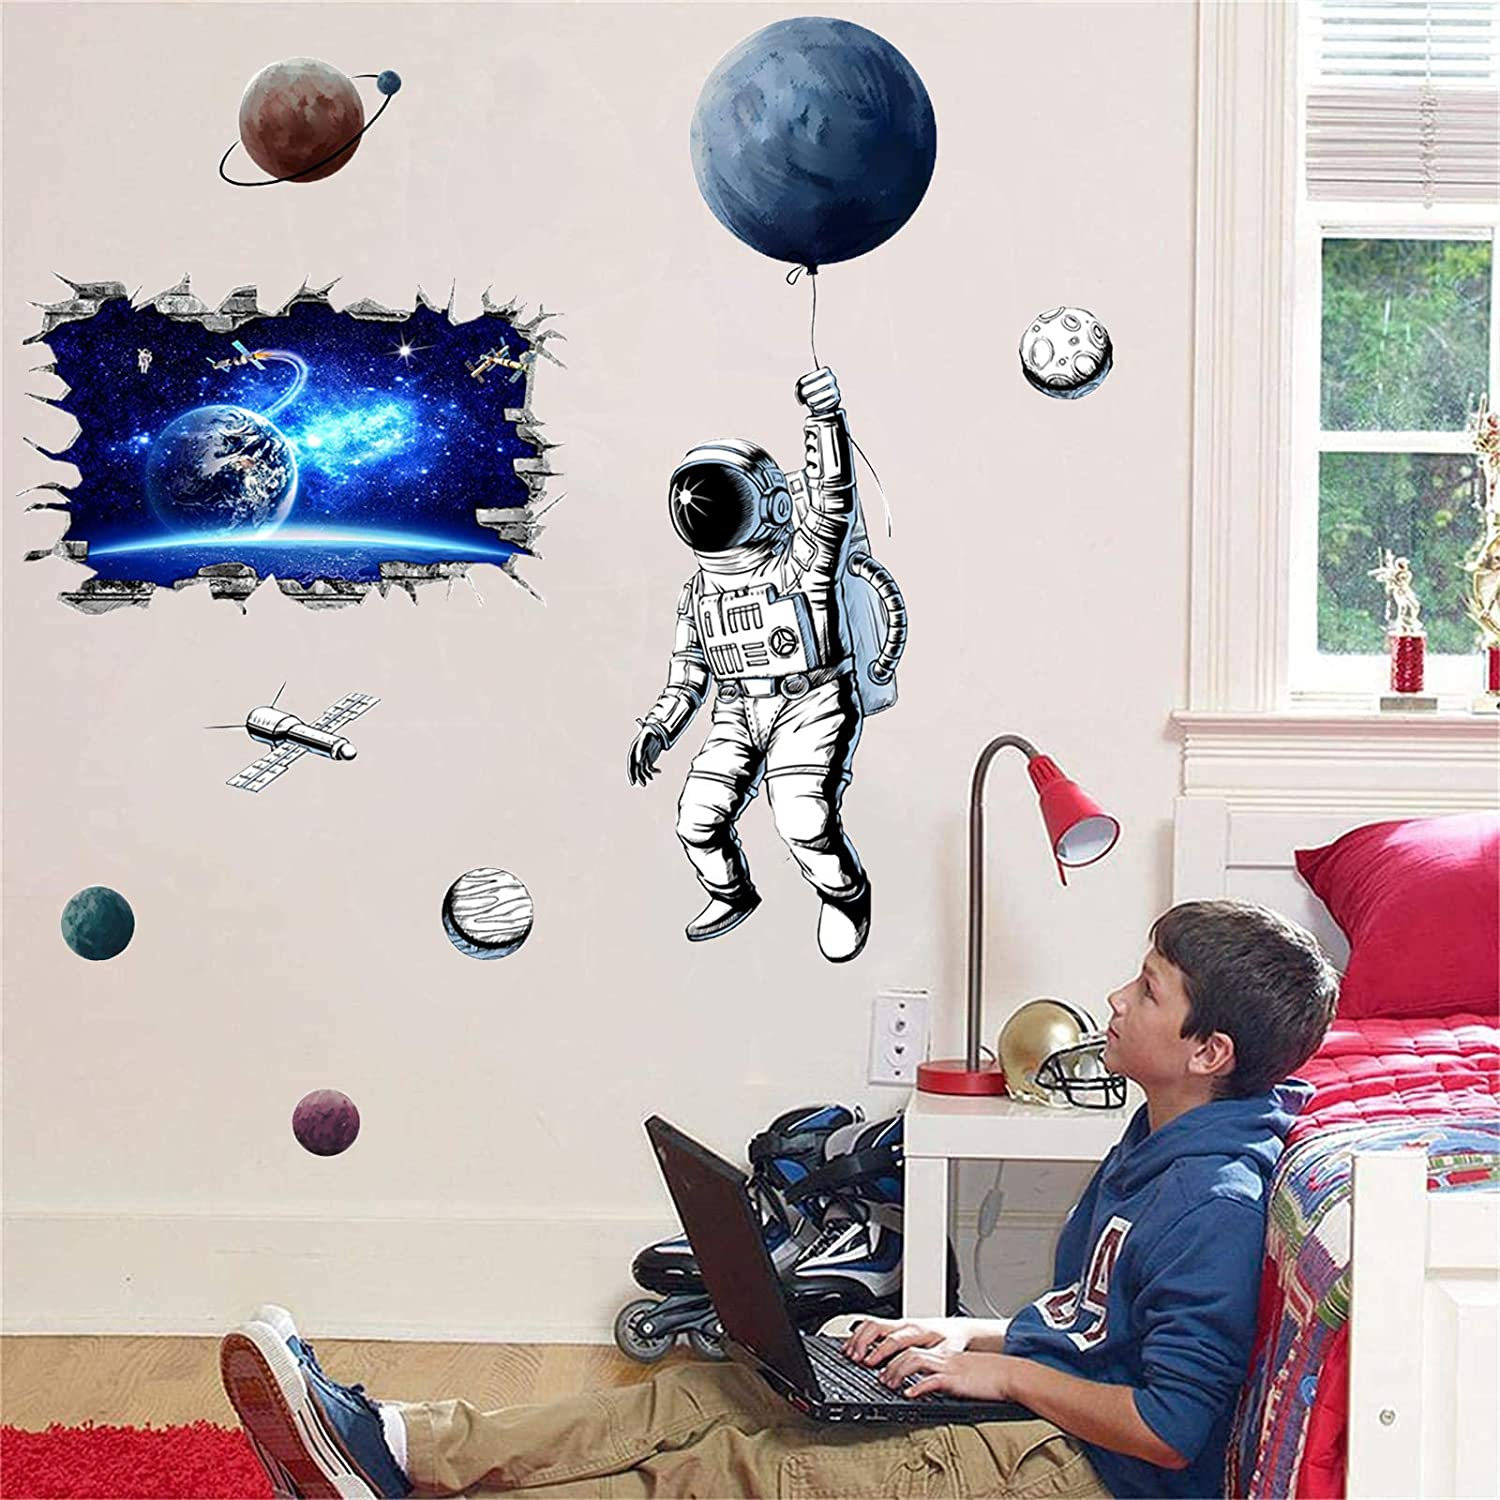 Space Decor Astronaut Planets and 3D Blue Cosmic Galaxy Wall Stickers for DIY Wall Decals Wall Bedroom Decor  65.3in x 63.7in  2 Sets of Combinations for Kids Bedroom Posters for Boys Room